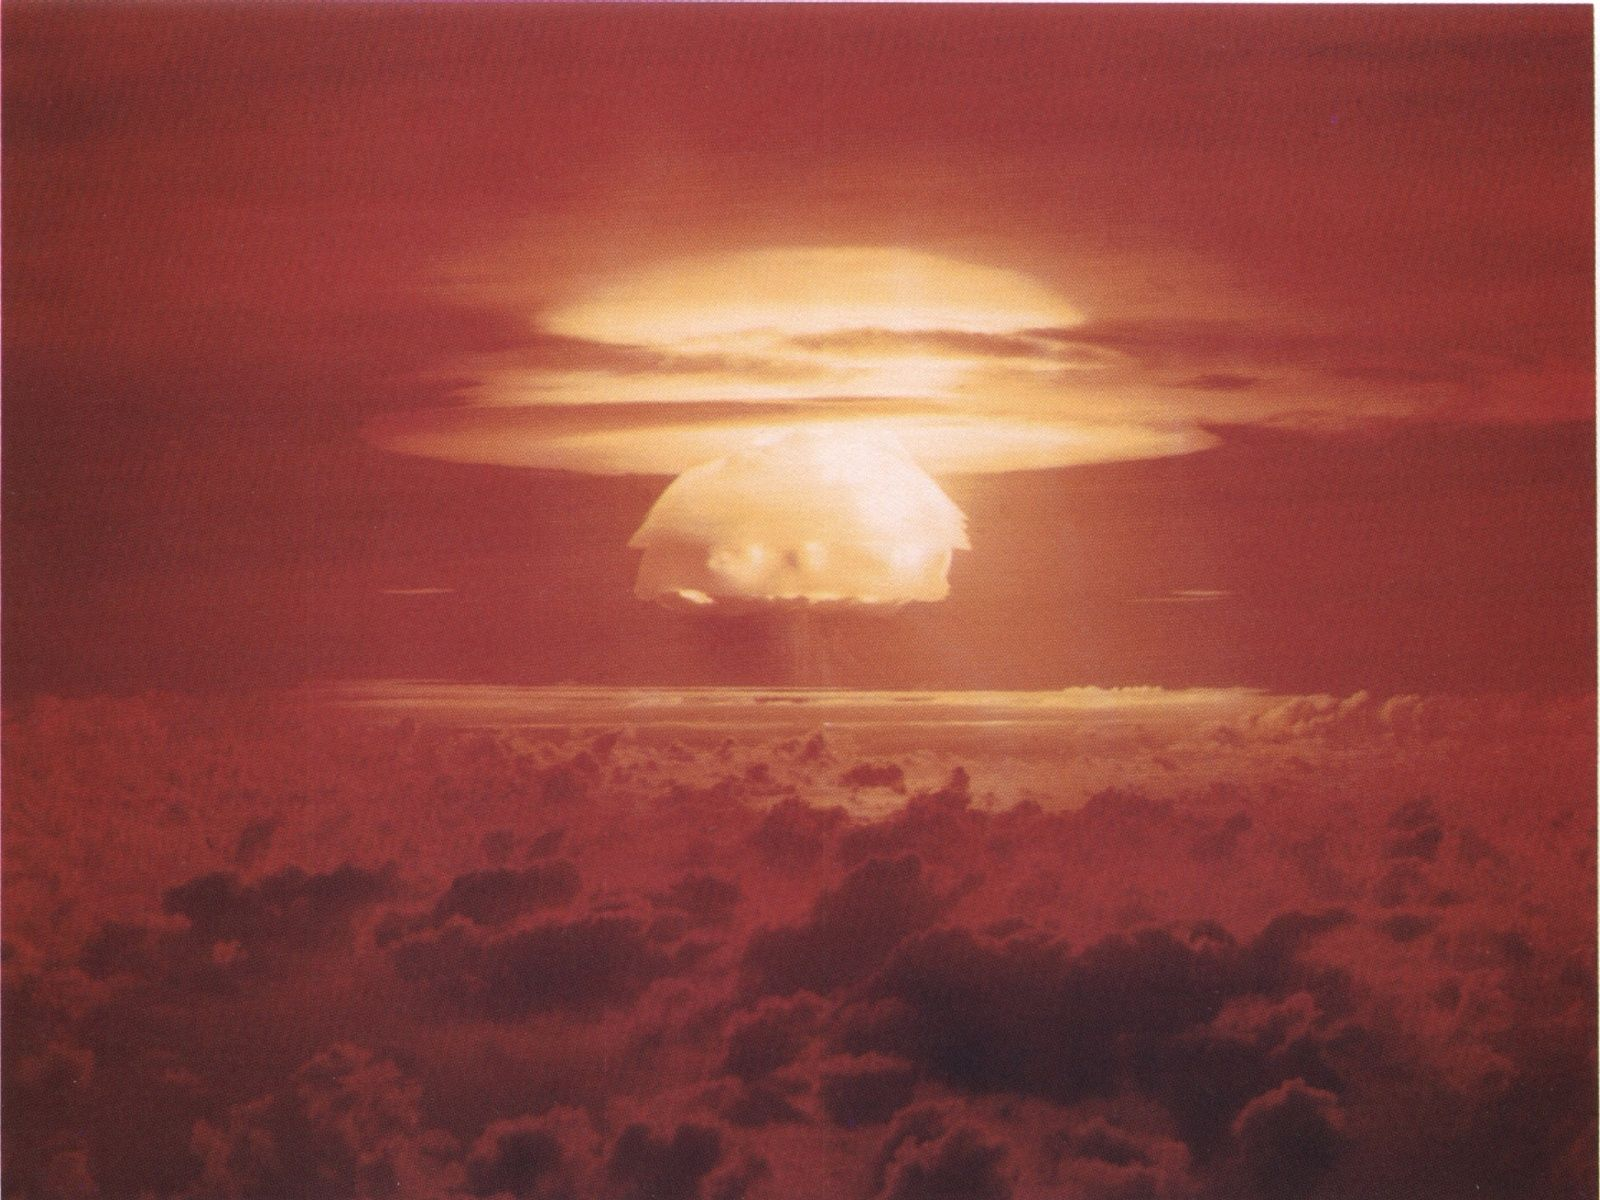 Nuclear weapon test